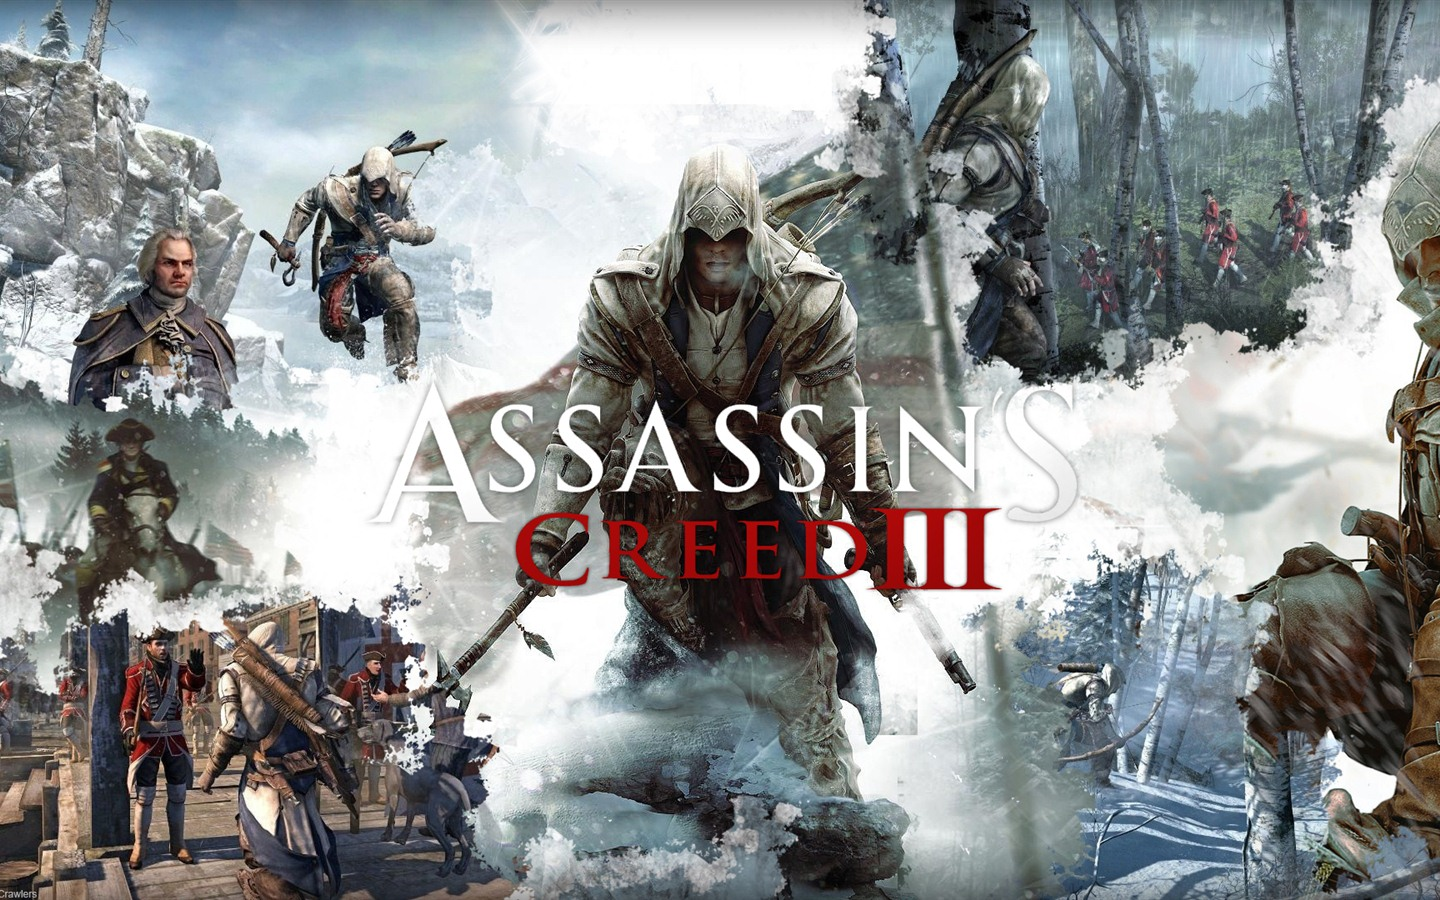 Assassin 's Creed 3 fonds d'écran HD #14 - 1440x900